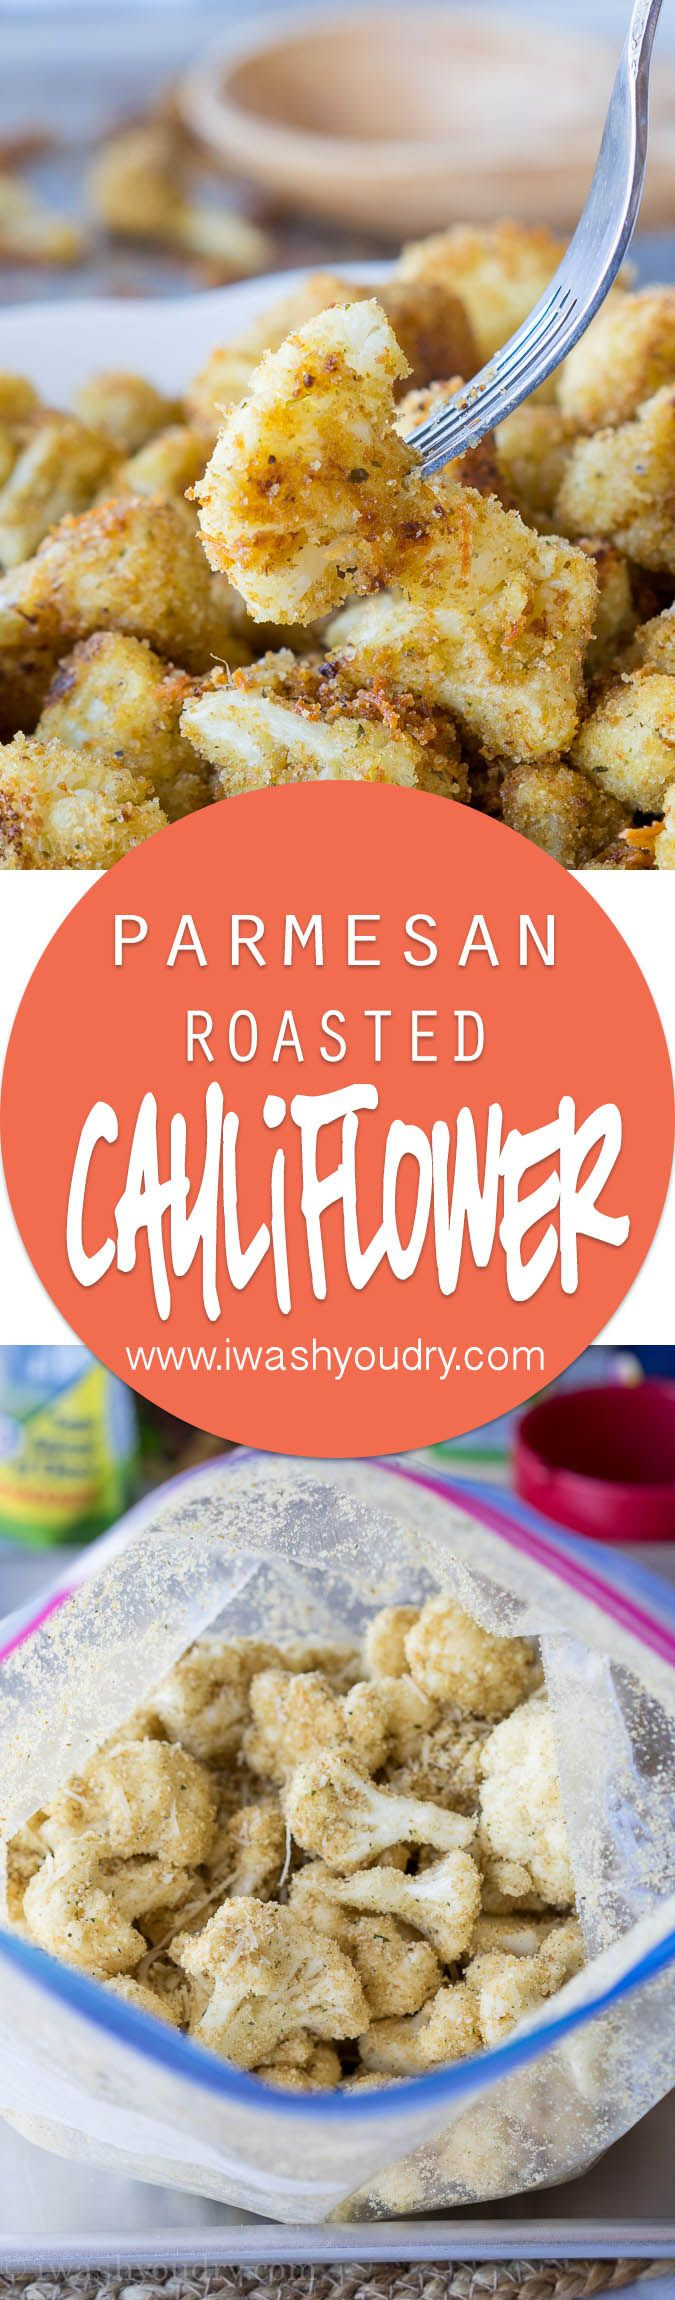 These Parmesan Roasted Cauliflower Bites are so easy to make and taste absolutely phenomenal. My whole family devoured the pan. (Low Carb Easy Bread)